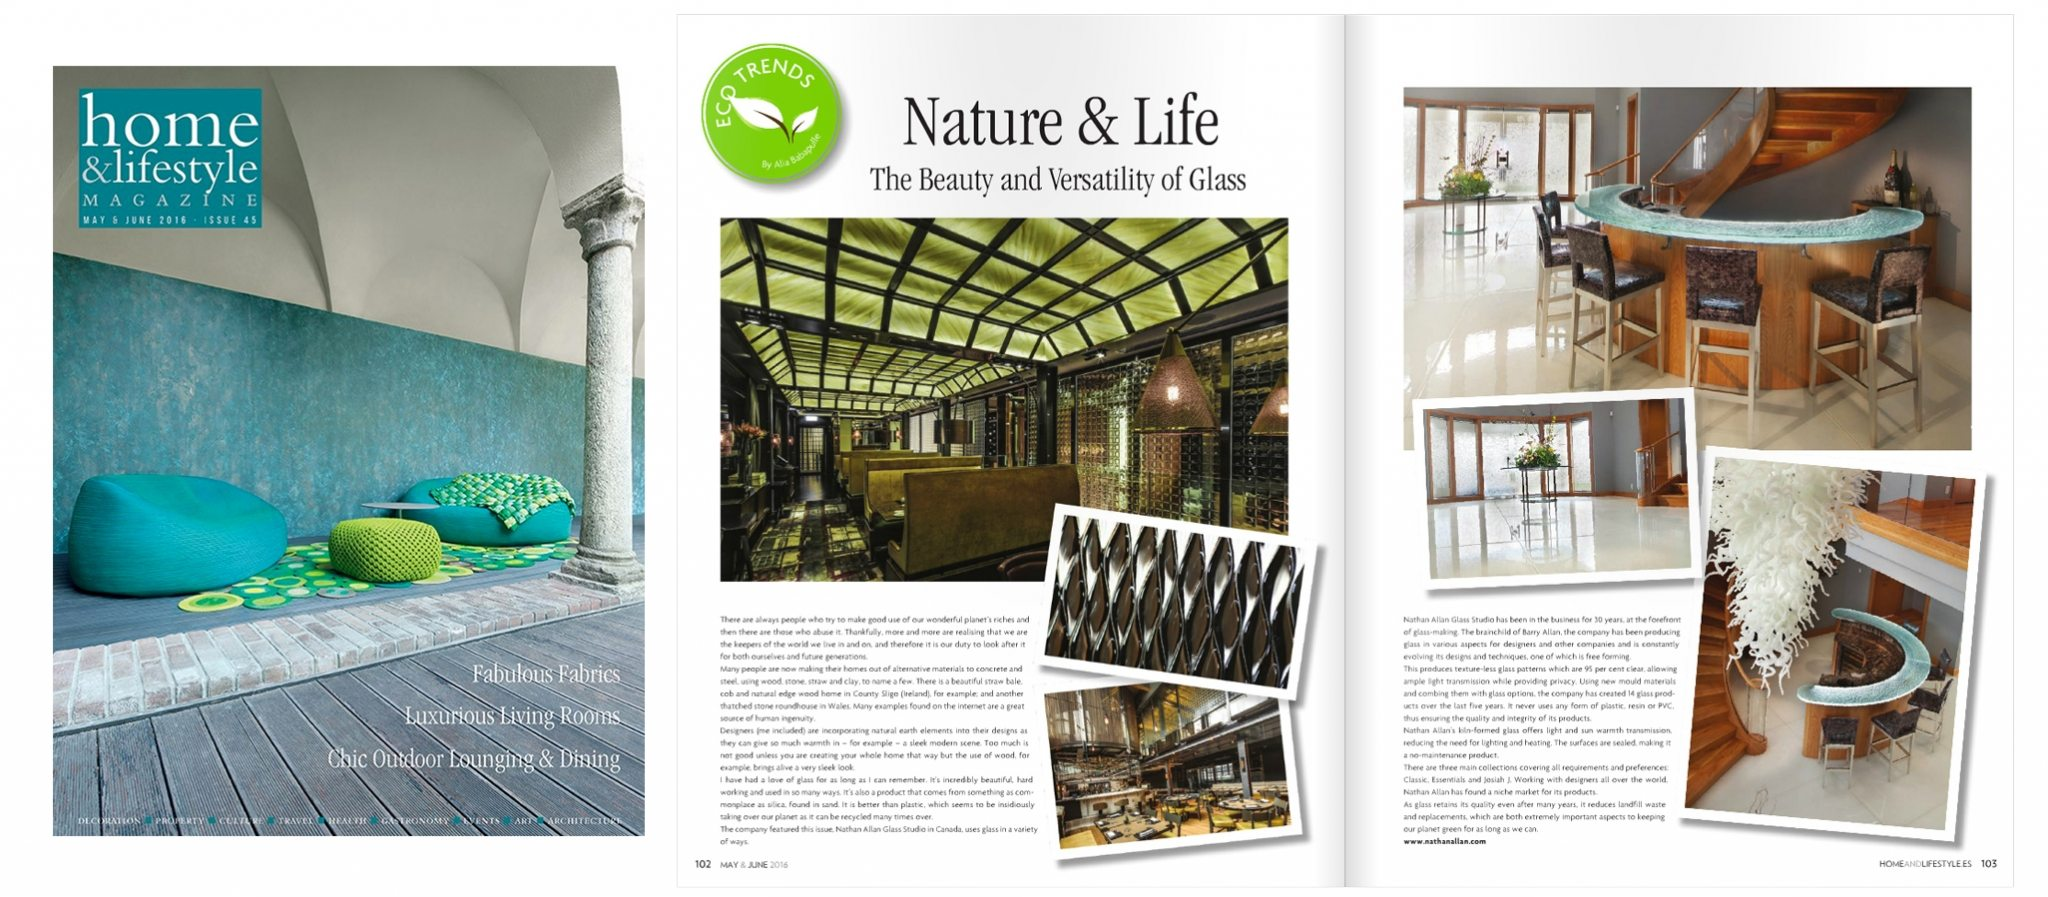 Home and Lifestyle Magazine Nathan Allan Decorative Glass